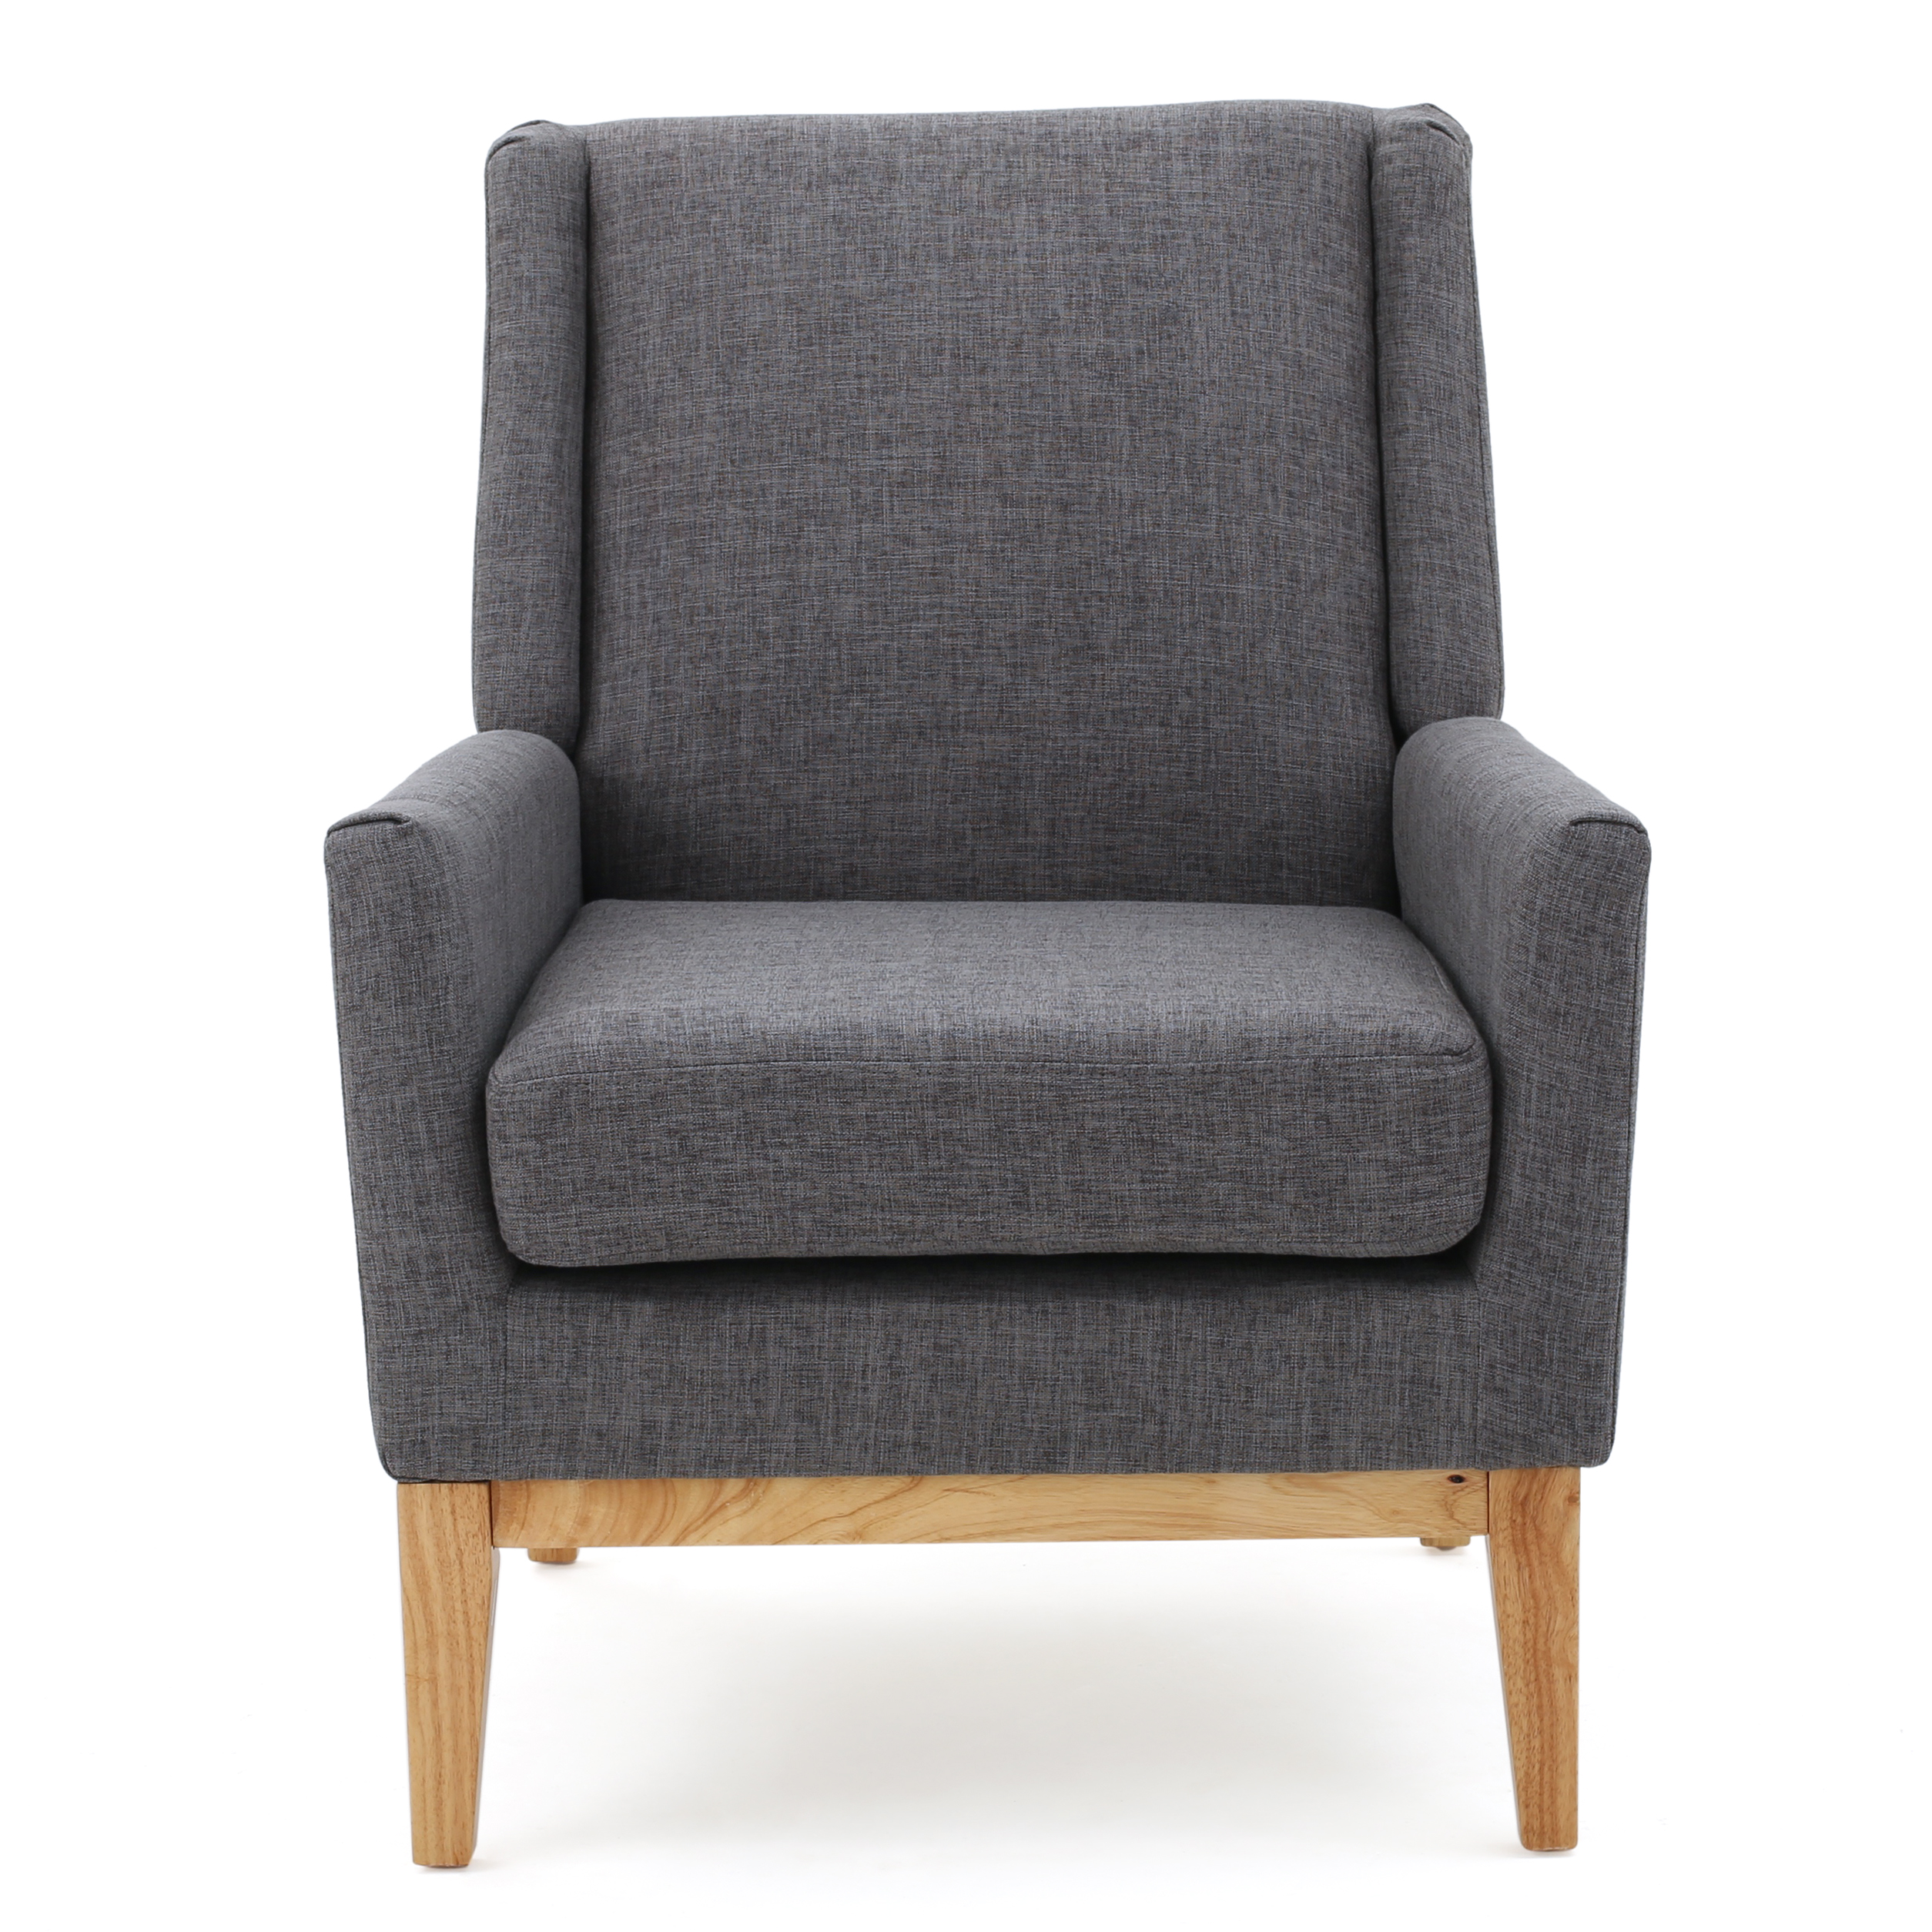 Attrayant Archibald Mid Century Modern Fabric Accent Chair, Light Grey